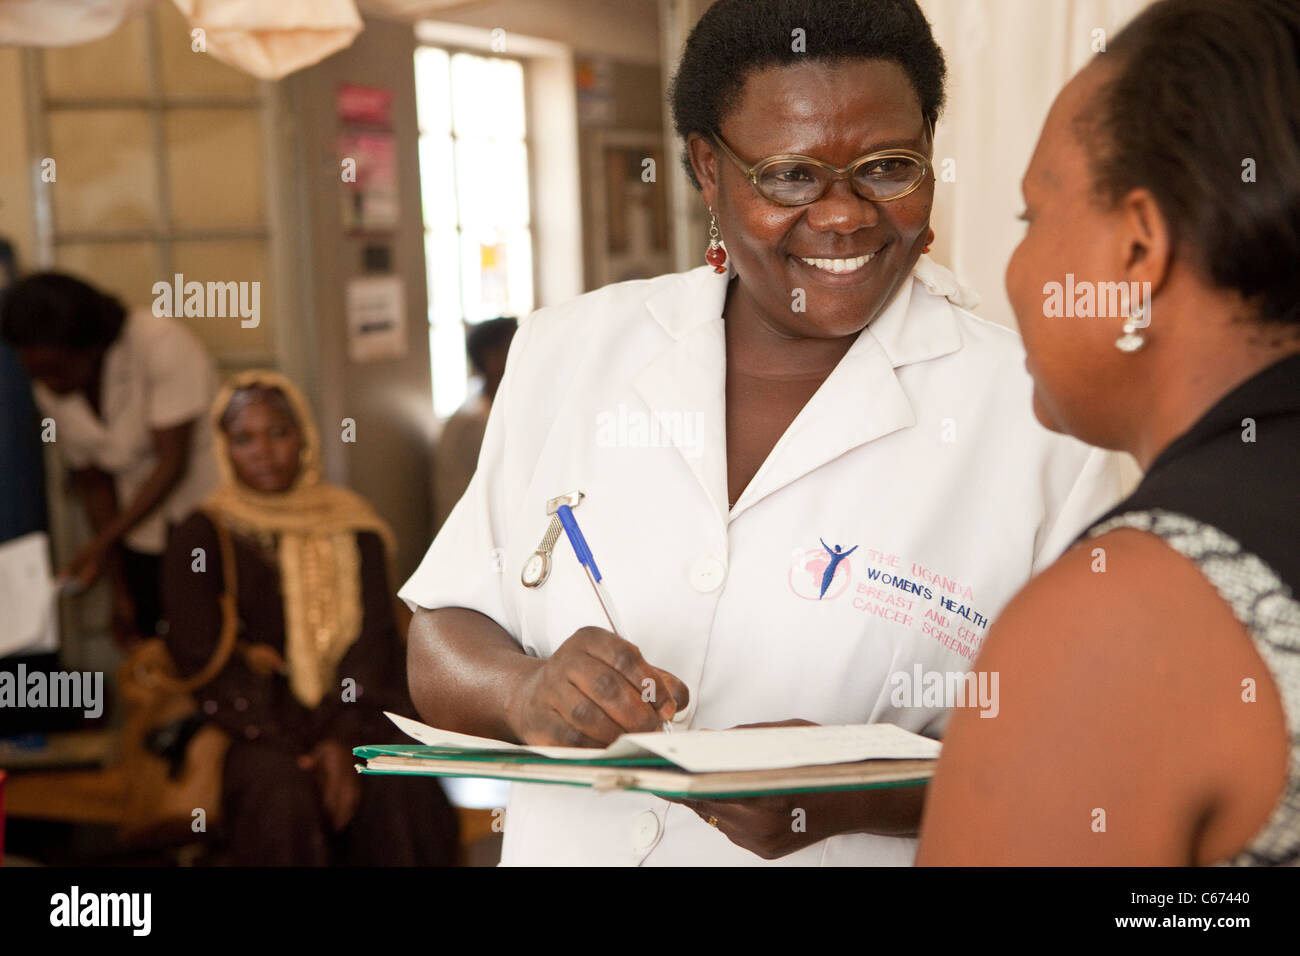 A nurse consults with a patient at a clinic in Kampala, Uganda, East Africa. Stock Photo